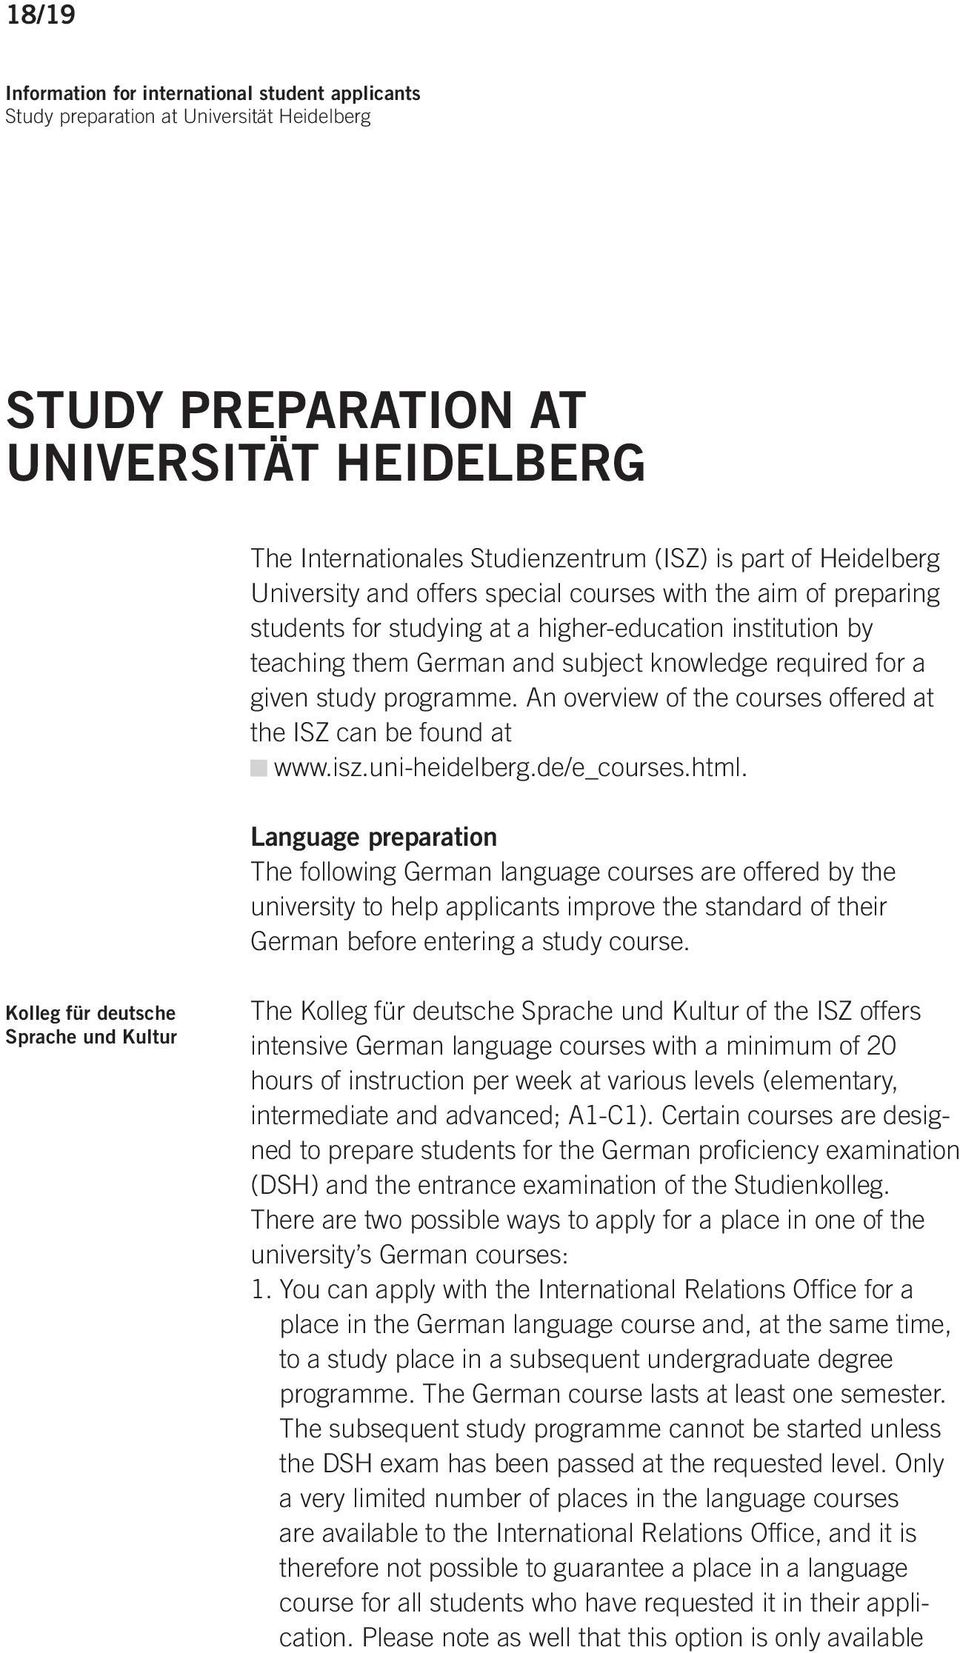 study programme. An overview of the courses offered at the ISZ can be found at www.isz.uni-heidelberg.de/e_courses.html.